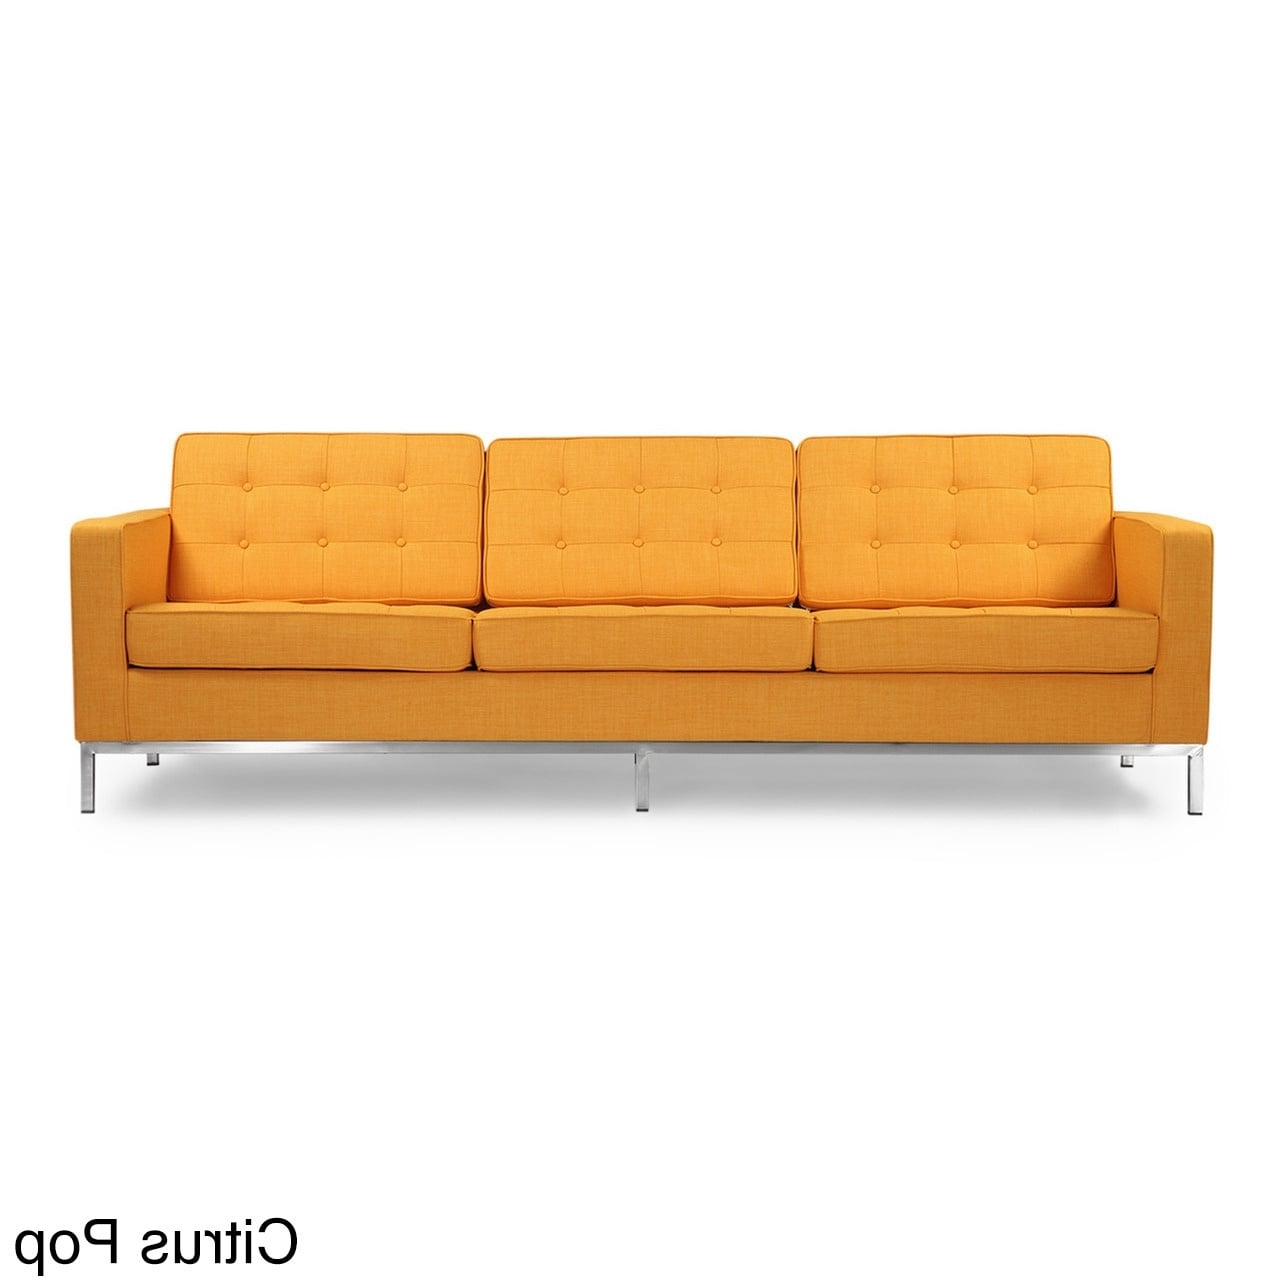 Well Known Florence Knoll Style Sofas Regarding Kardiel Florence Knoll Style Sofa 3 Seat, Premium Fabric (View 19 of 20)